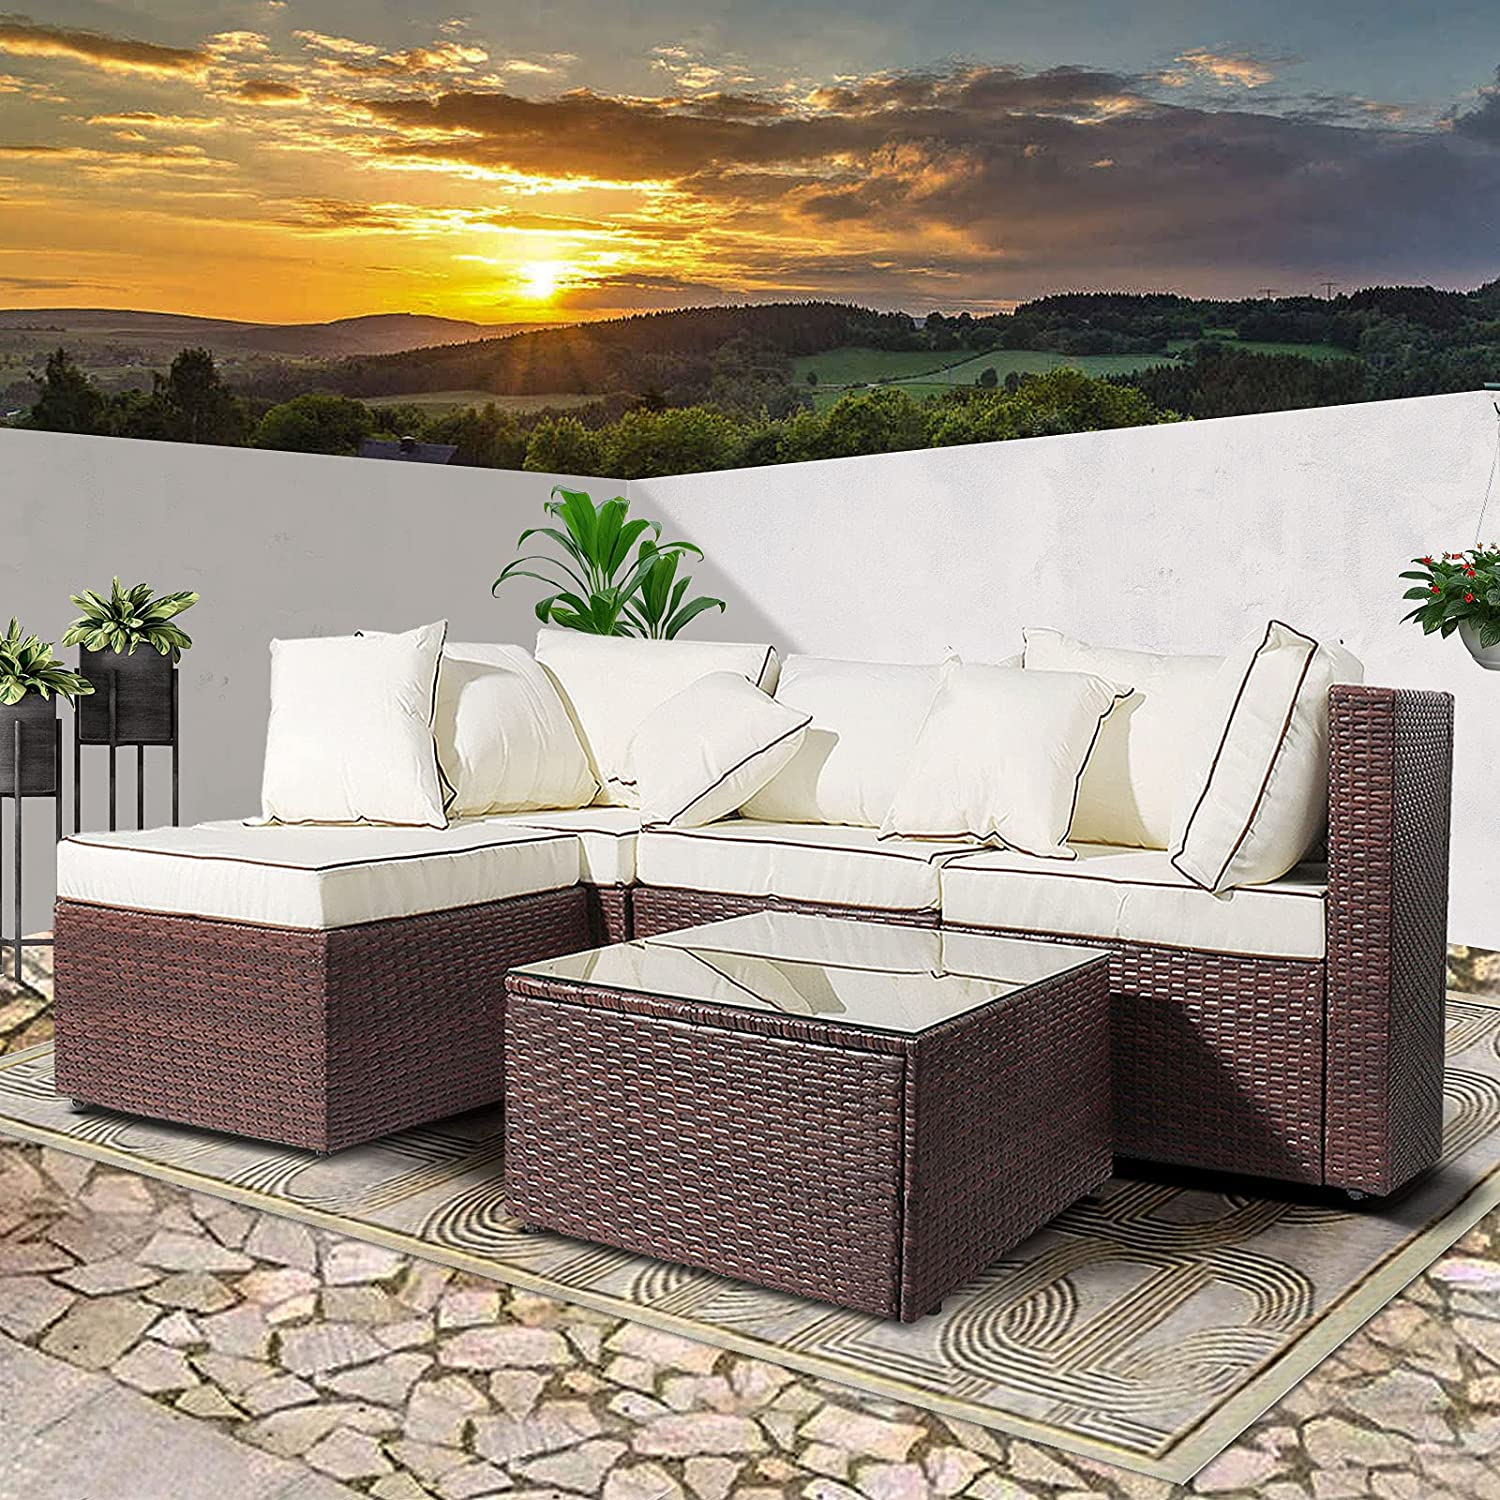 AWQM 5 Pieces Patio Furniture Sets All Weather Outdoor Sectional Sofa Manual Weaving Wicker Rattan Patio Conversation Set with Cushion and Glass Table, Brown